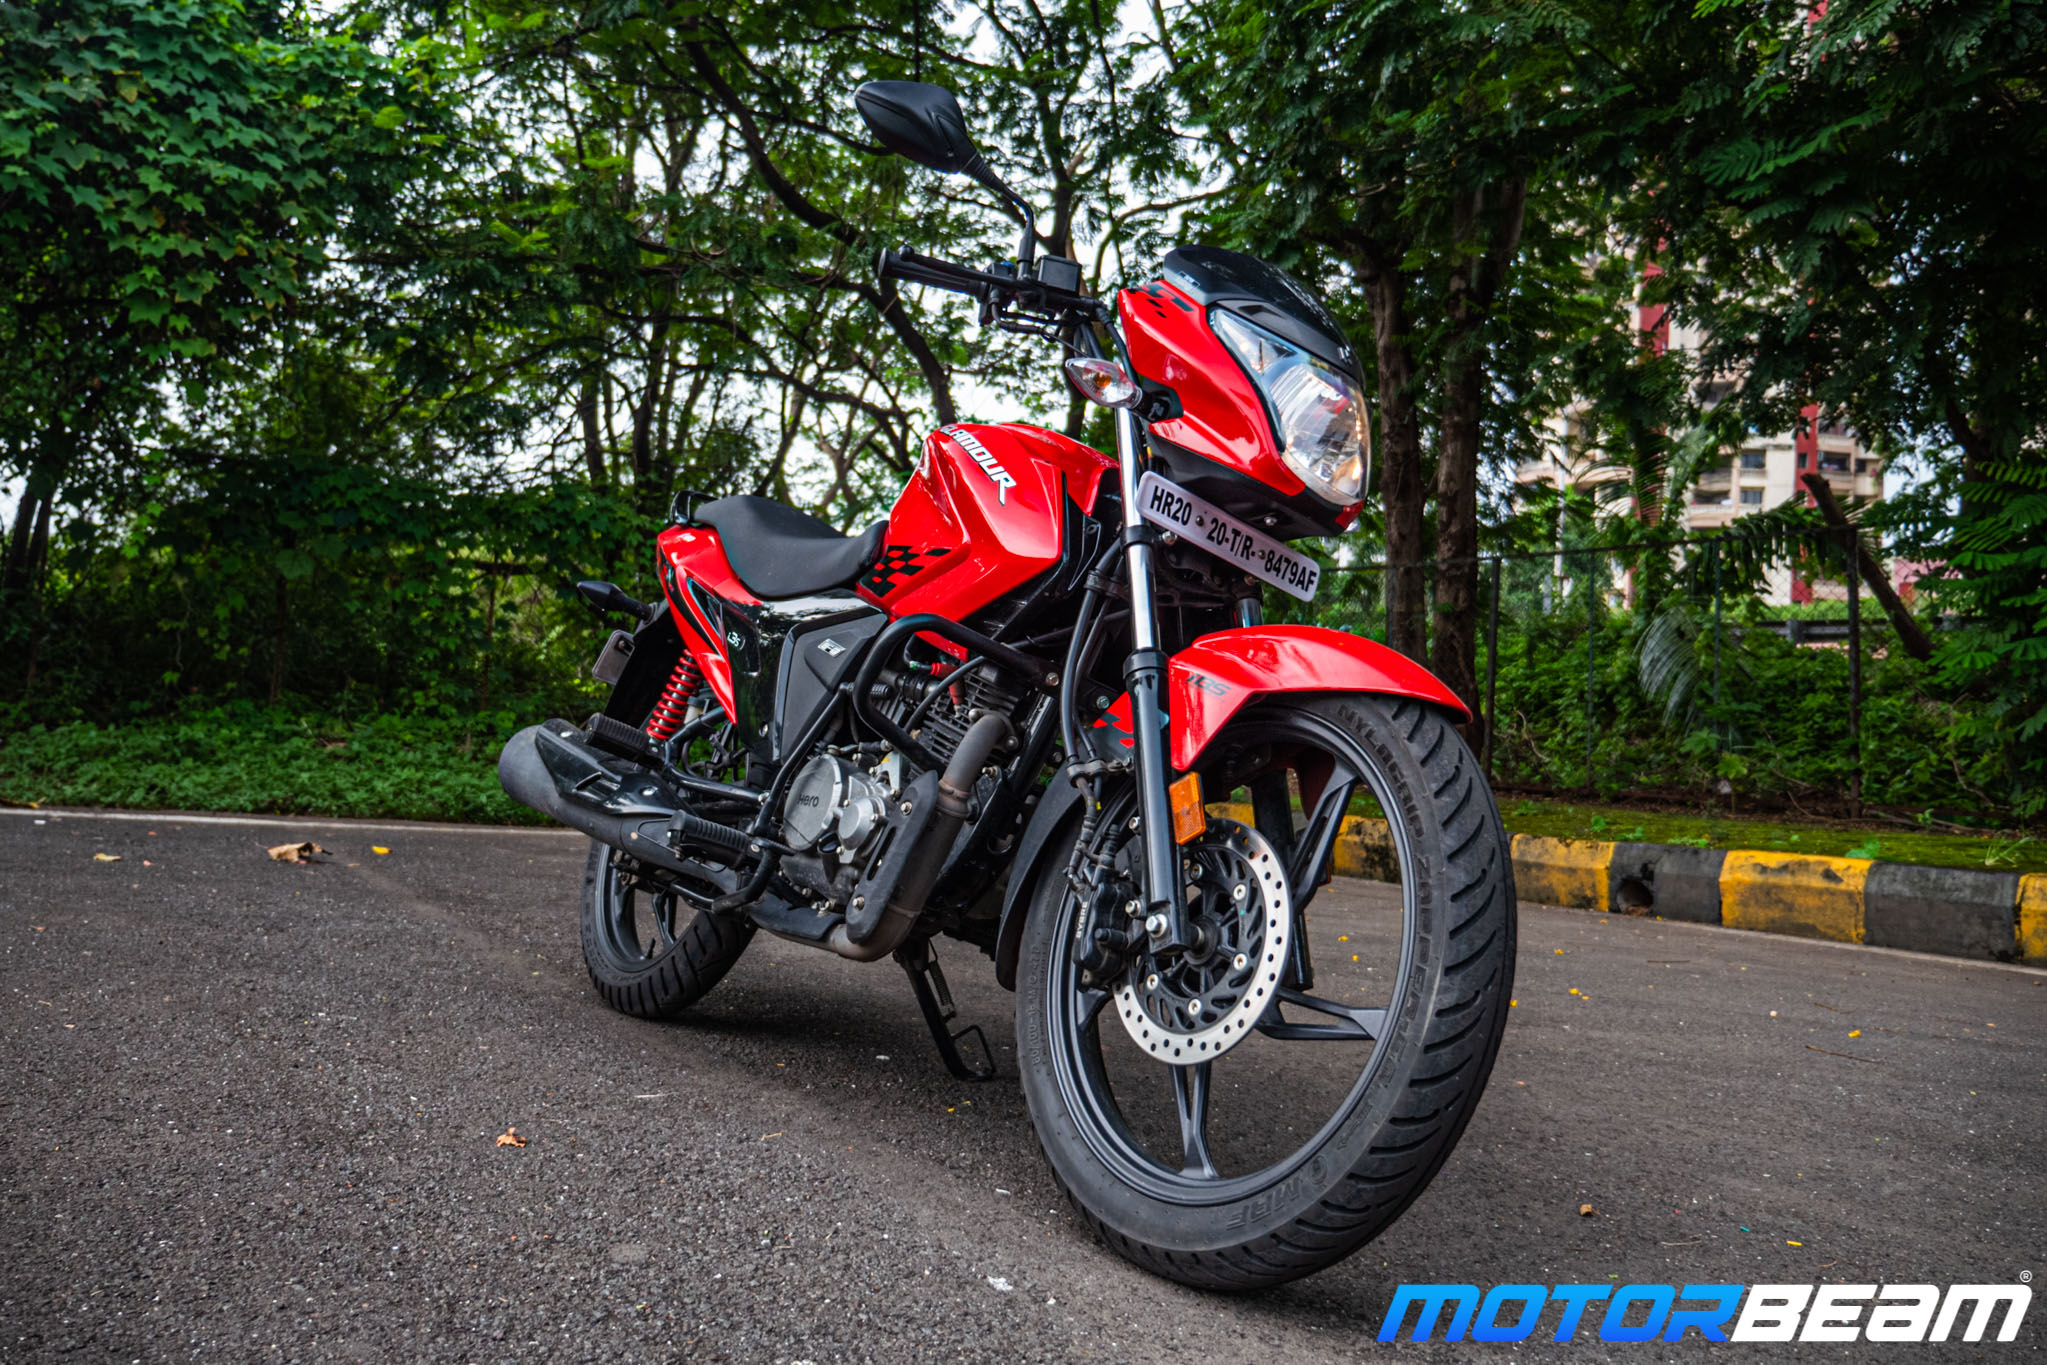 2020 Hero Glamour 125 Review 11